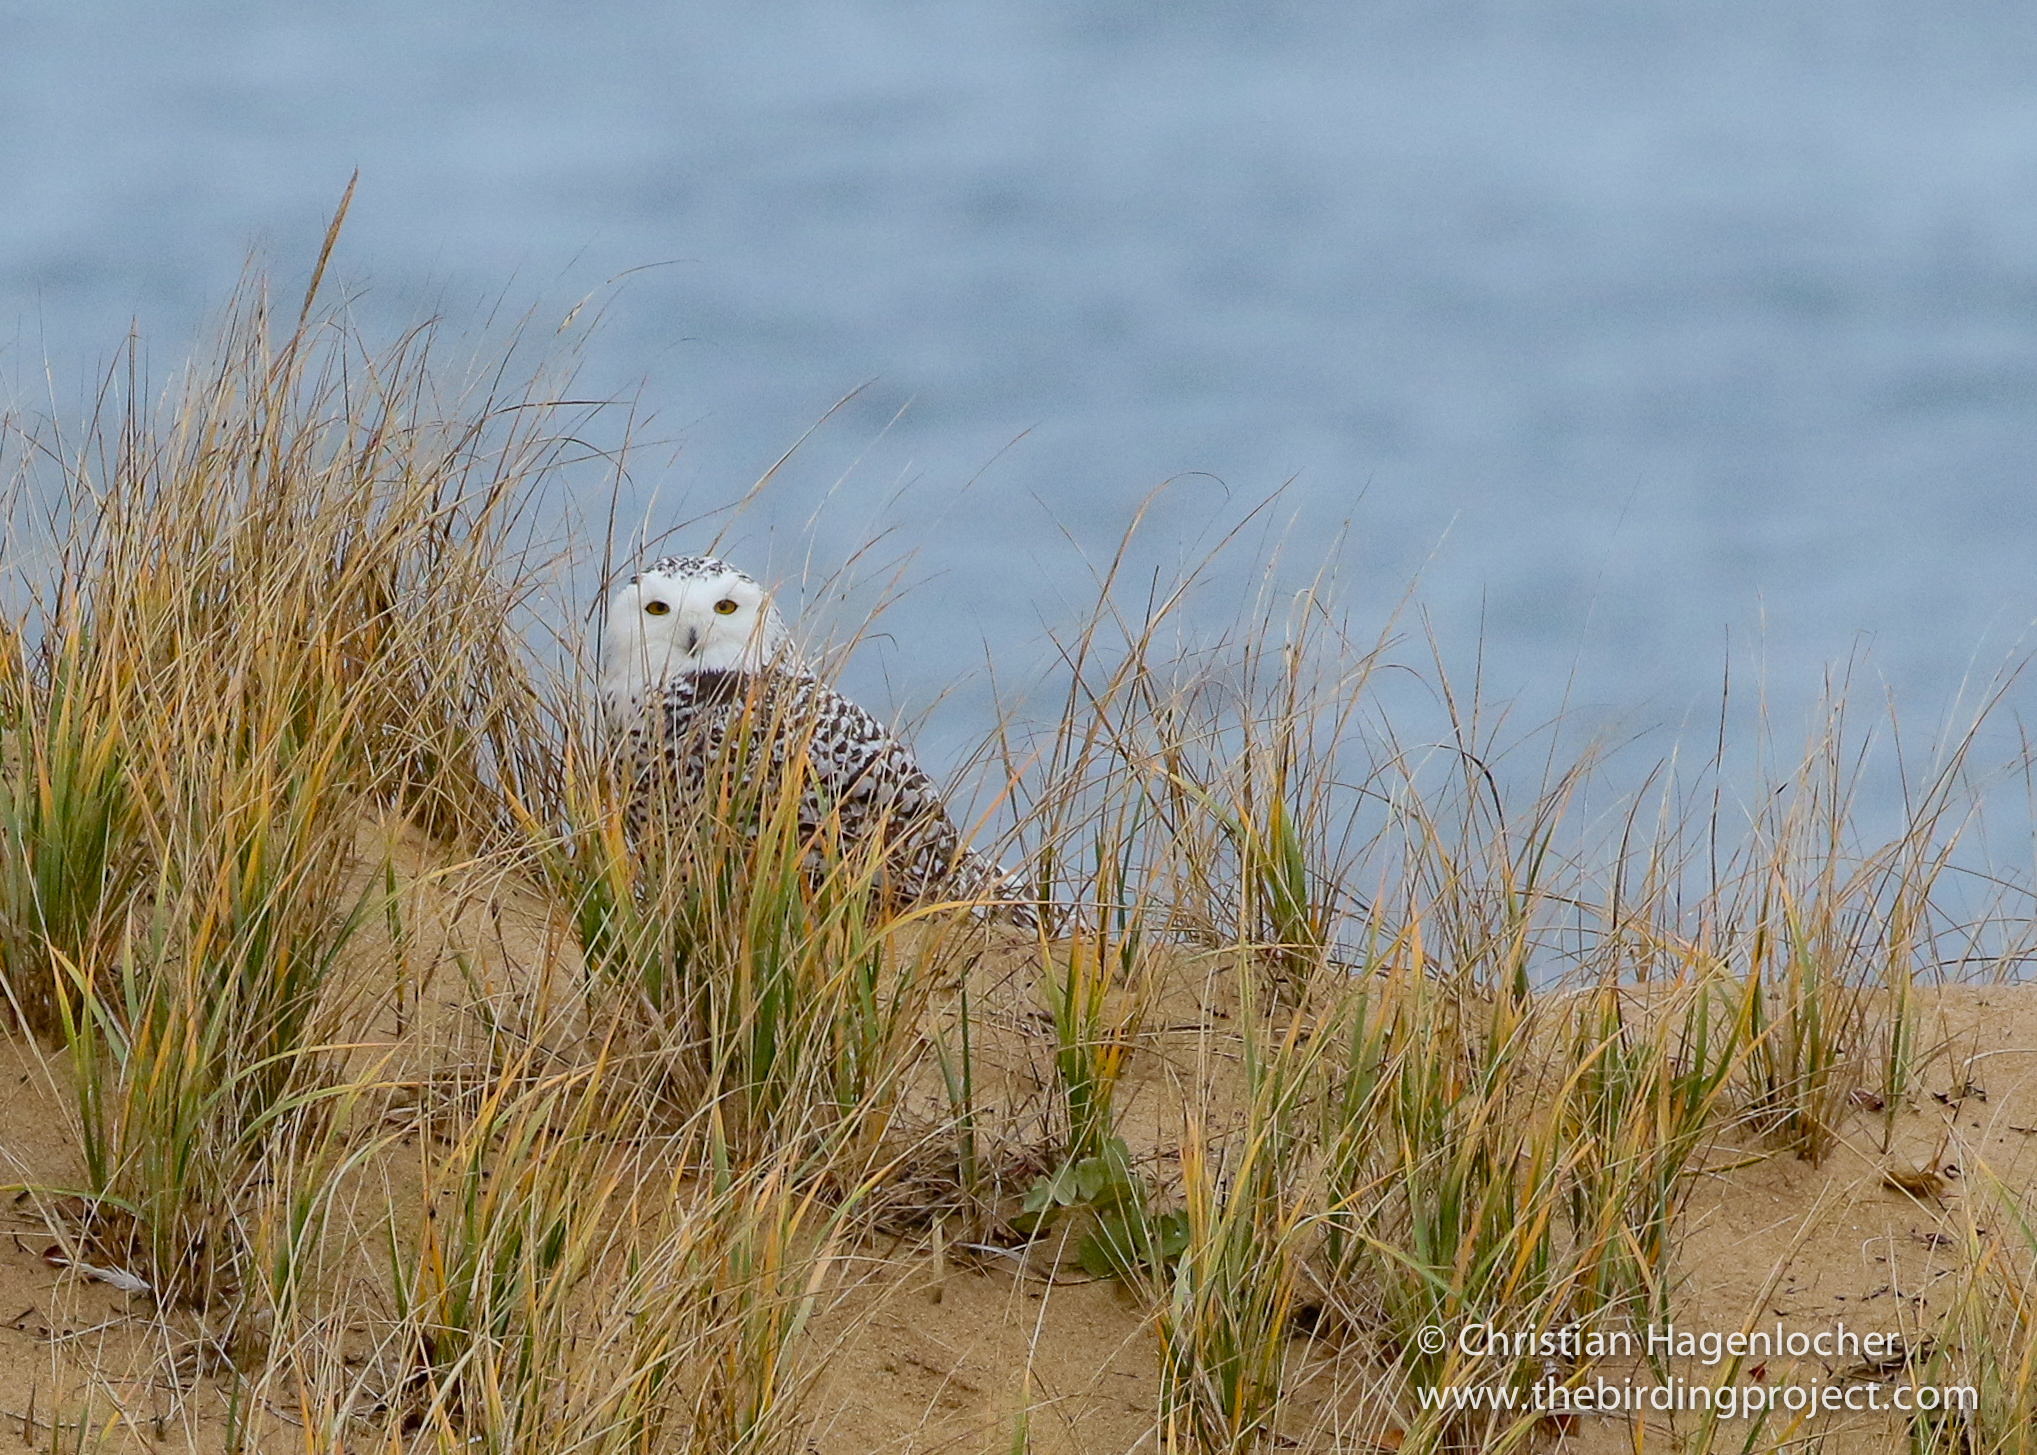 Snowy Owl in the dunes at Race Point. I haven't seen two Snowy Owls back-to-back since Attu!